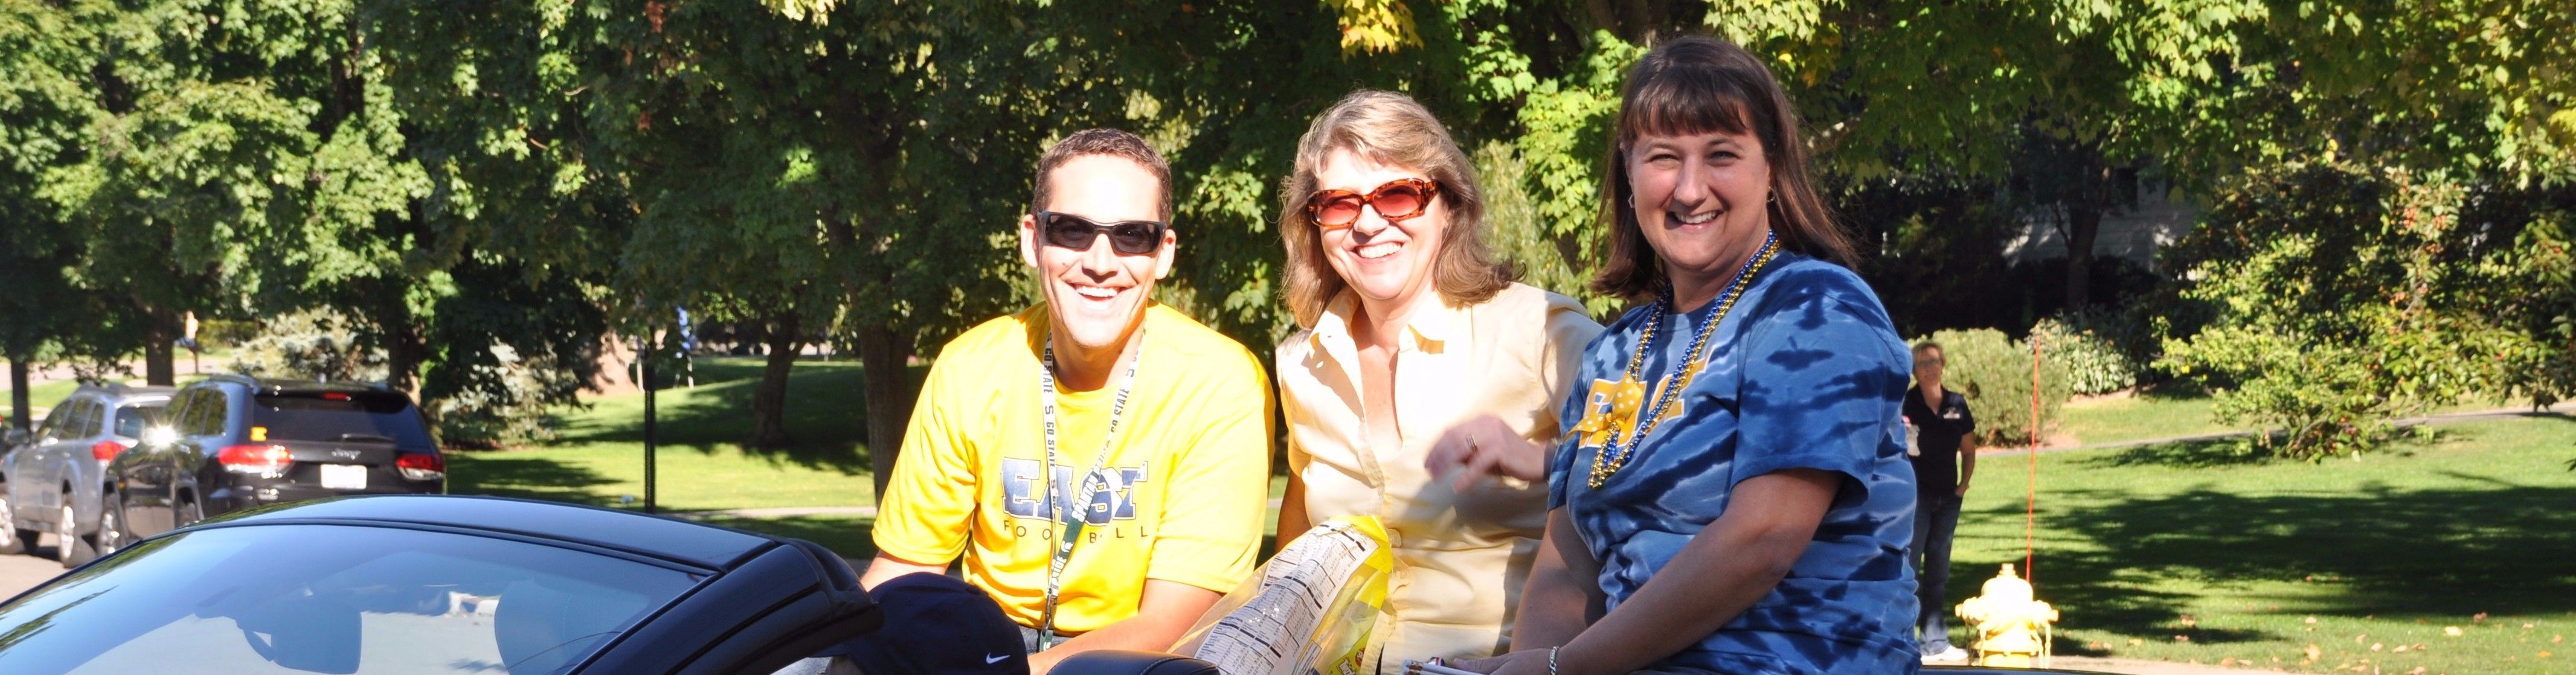 Teachers in homecoming parade